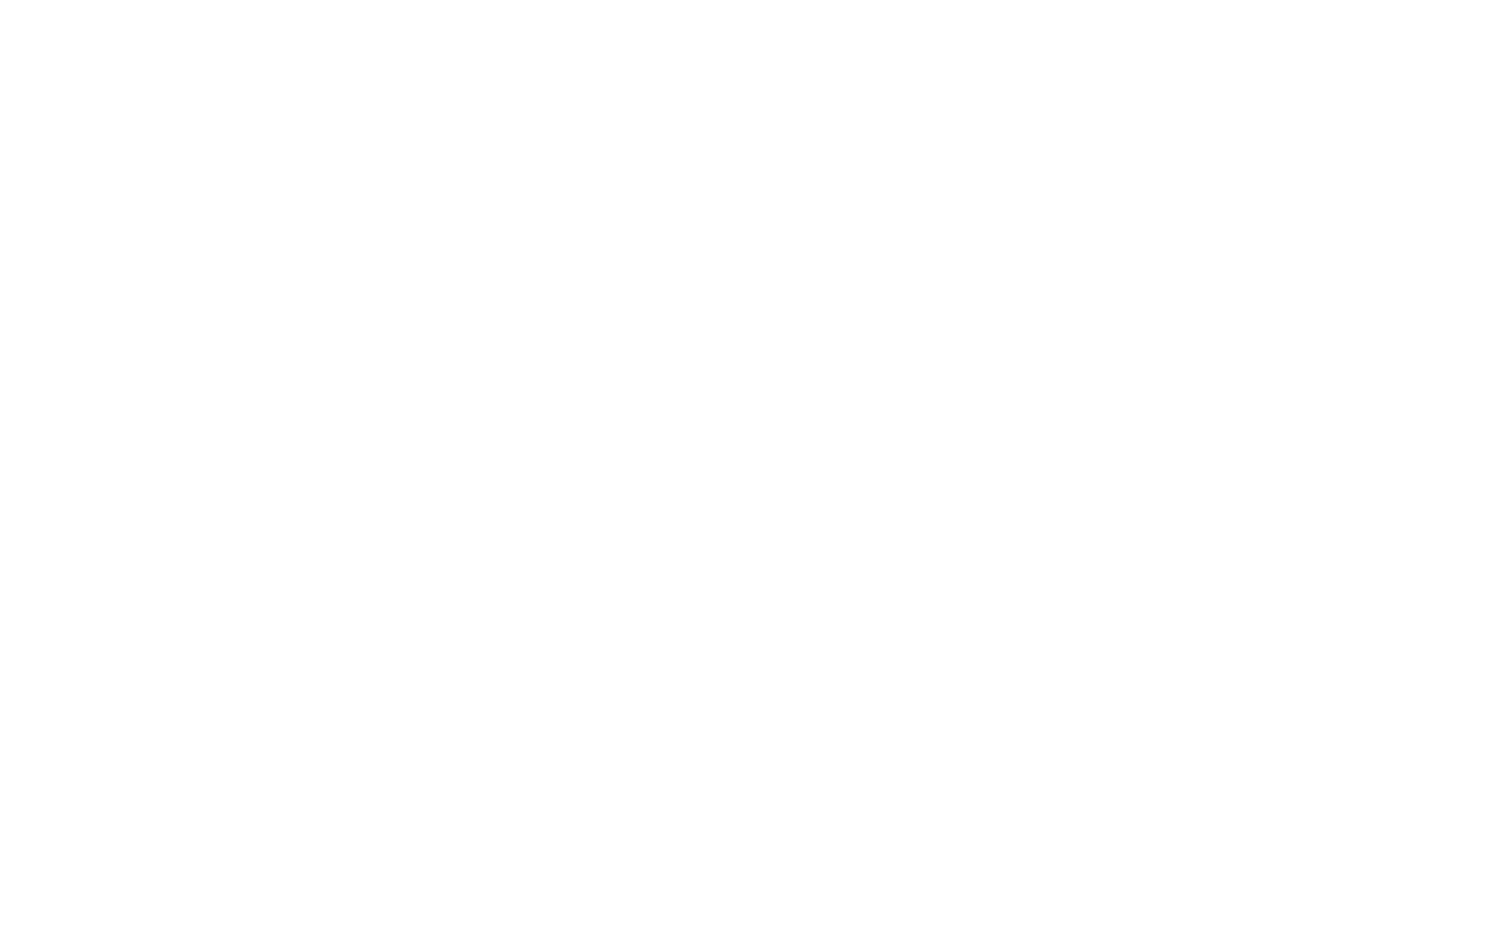 Men and Women of Action